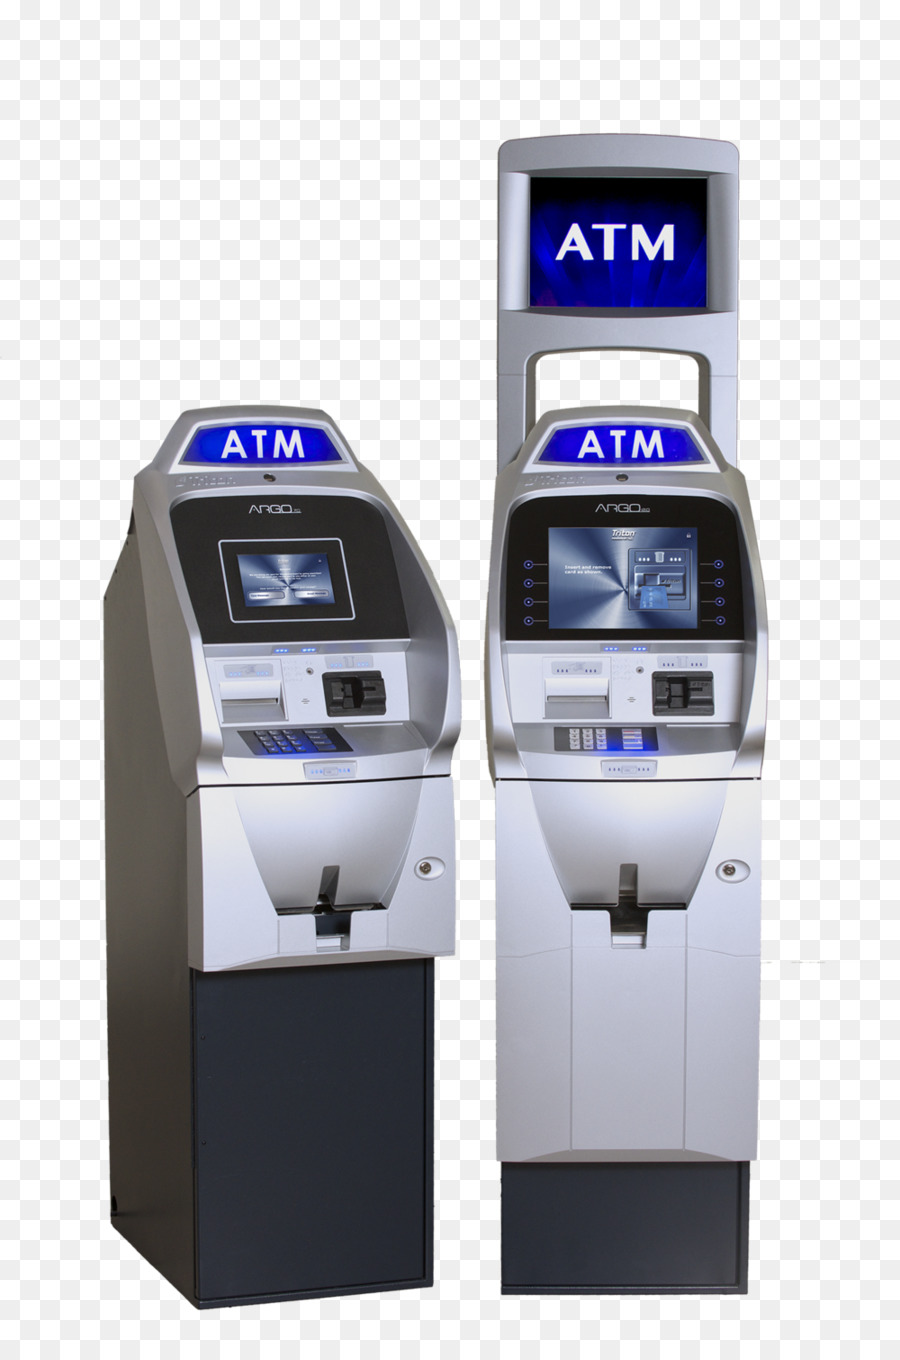 automatic teller machines Automatic teller machines february 15, 2007 admin operations management atm commonly known as 'automatic teller machine' or 'anytime money' has now become a.